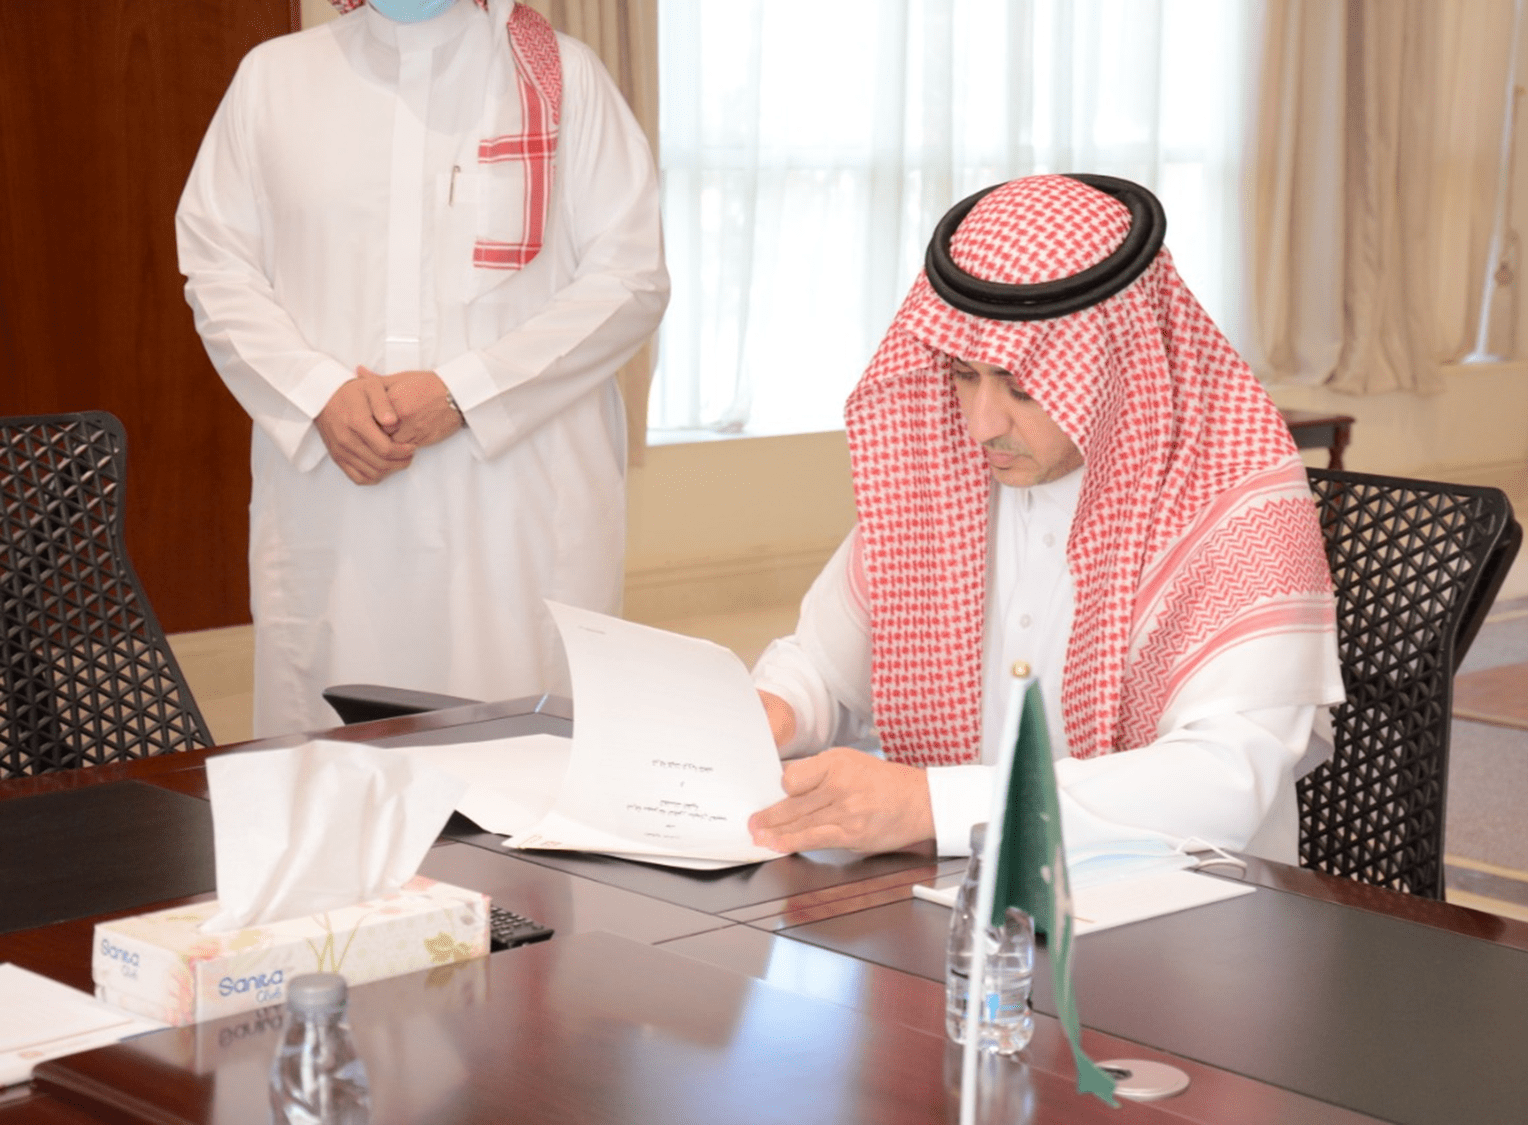 Vision Colleges concludes a contract to design an integrated educational building project in Riyadh